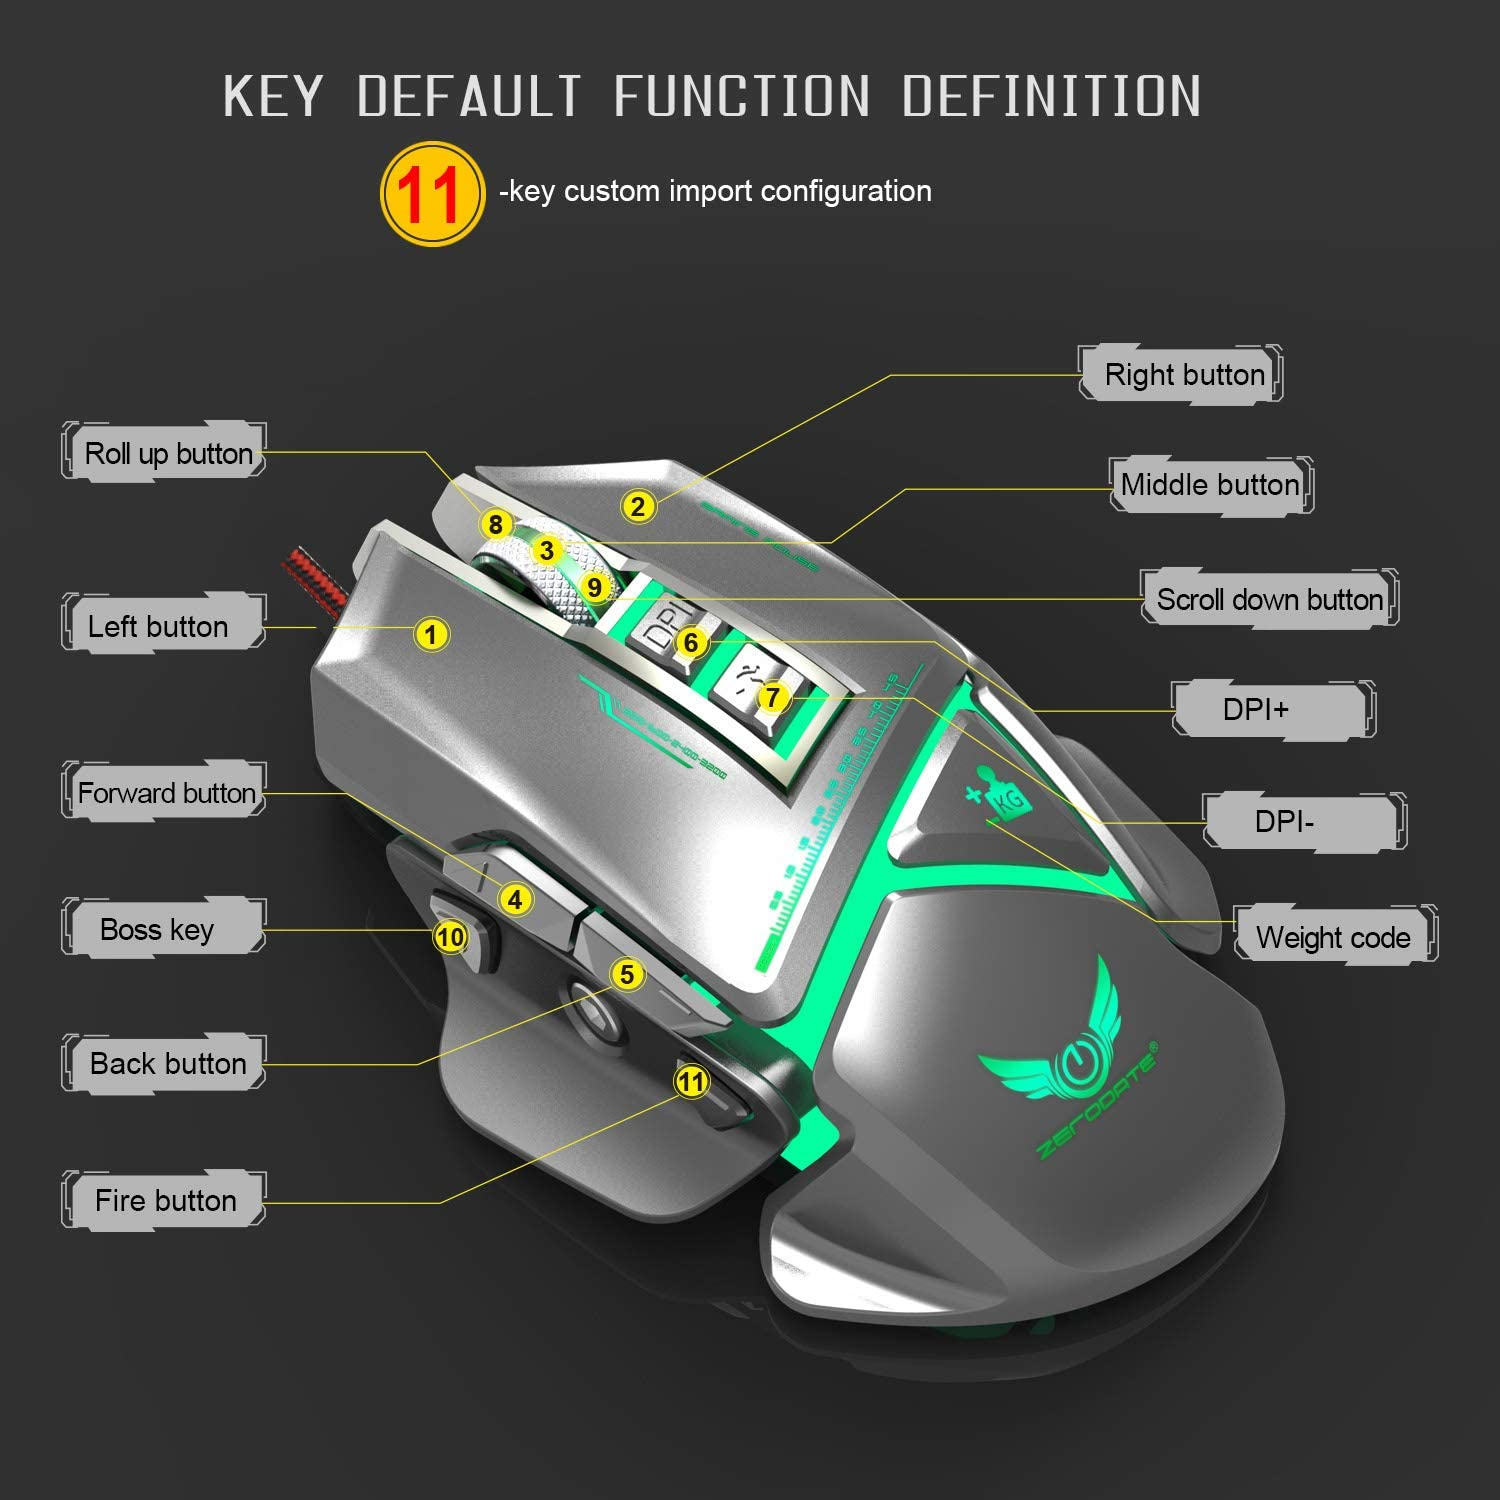 BEESCLOVER 11 Keys Game Mouse Colorful Mac-ro Programming Mouse Free Disassembly Comfortable Grip 3200dpi Adjustable for Zze-rodate X400GY Black